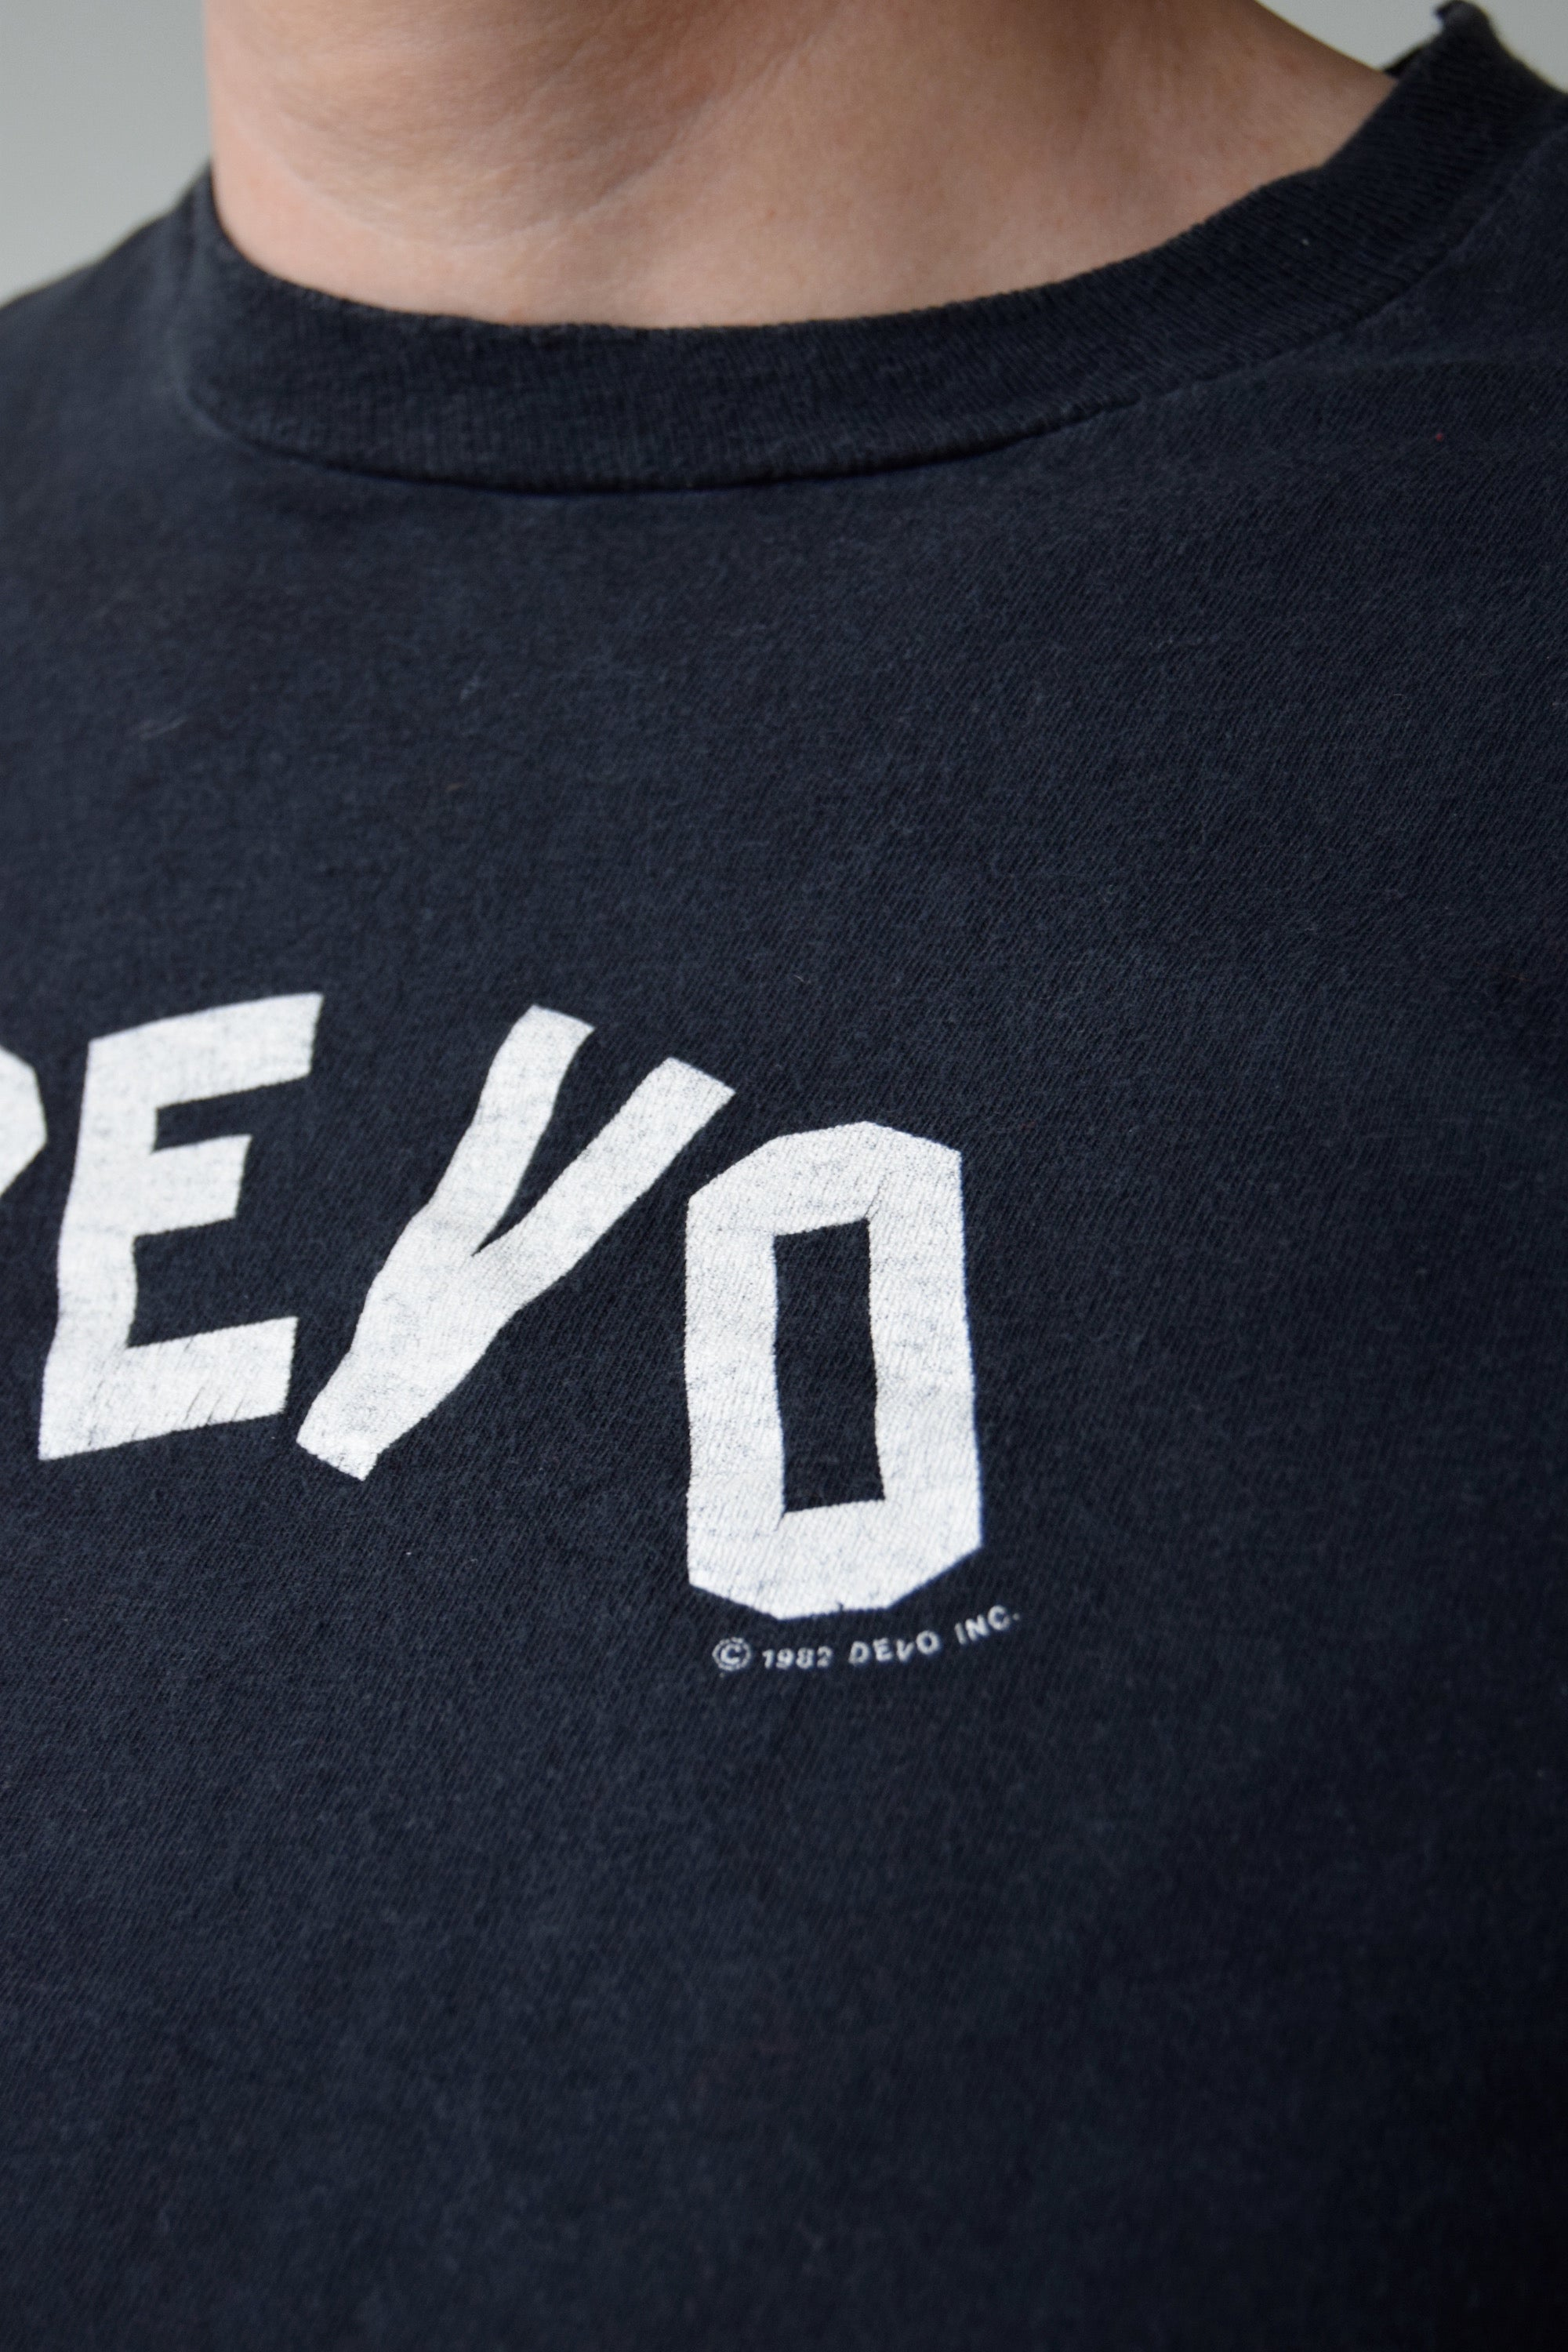 Vintage DEVO Tee 1982 FREE SHIPPING TO THE U.S.